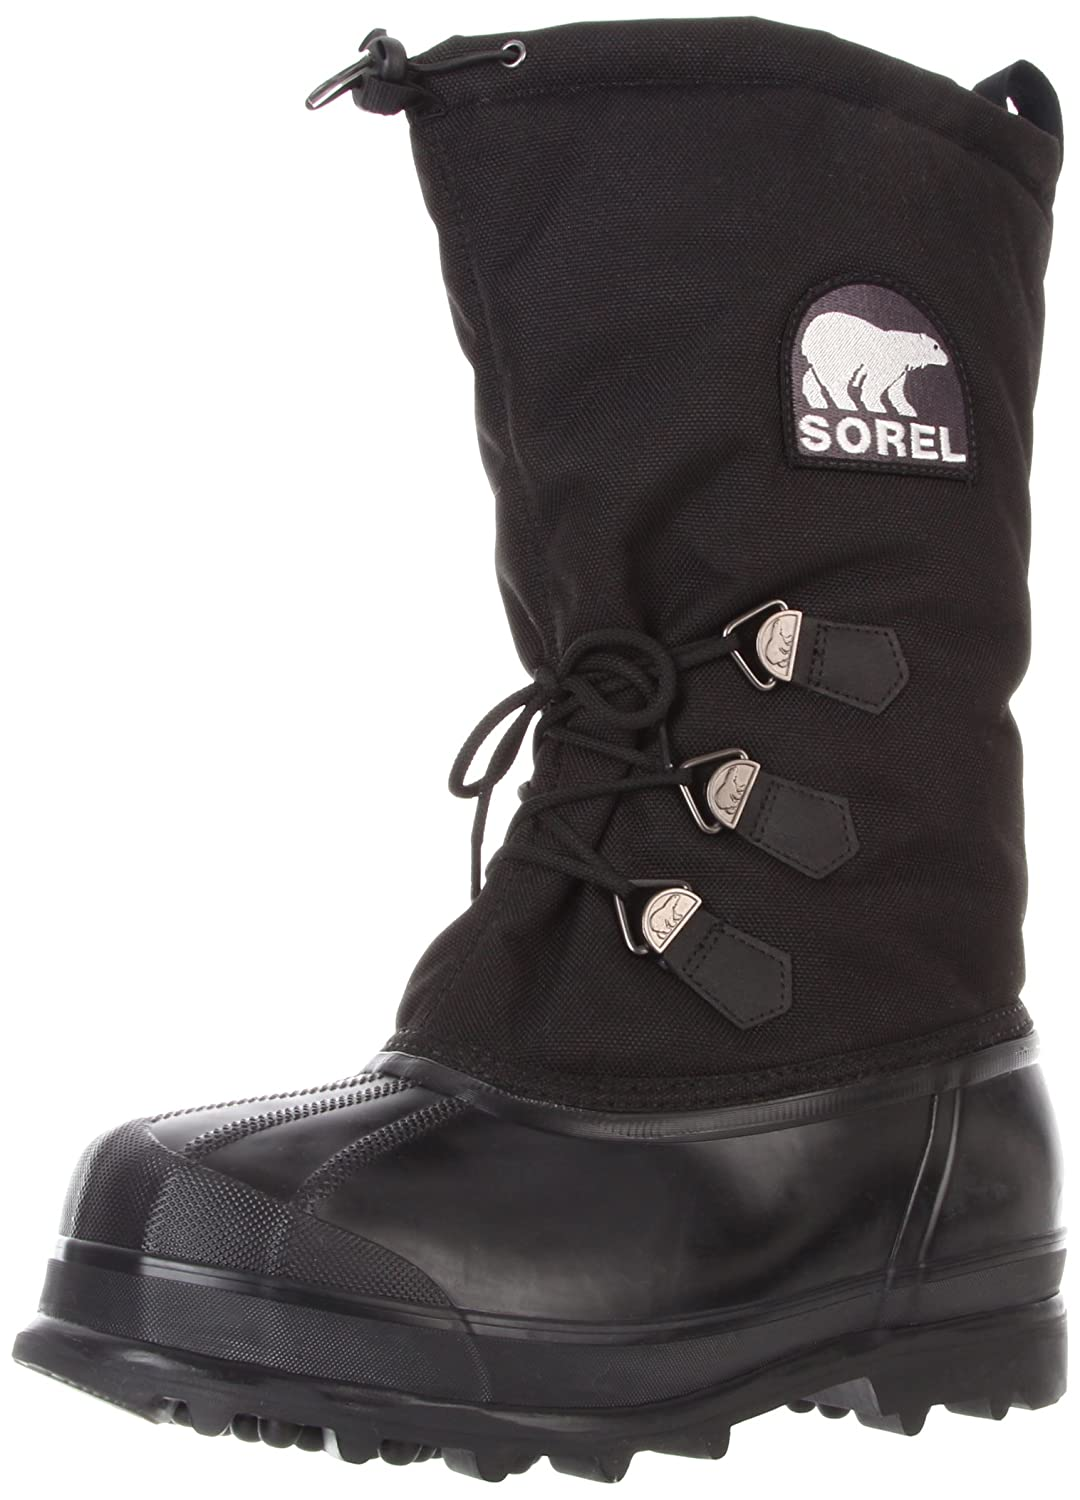 Sorel Men's Glacier Boot